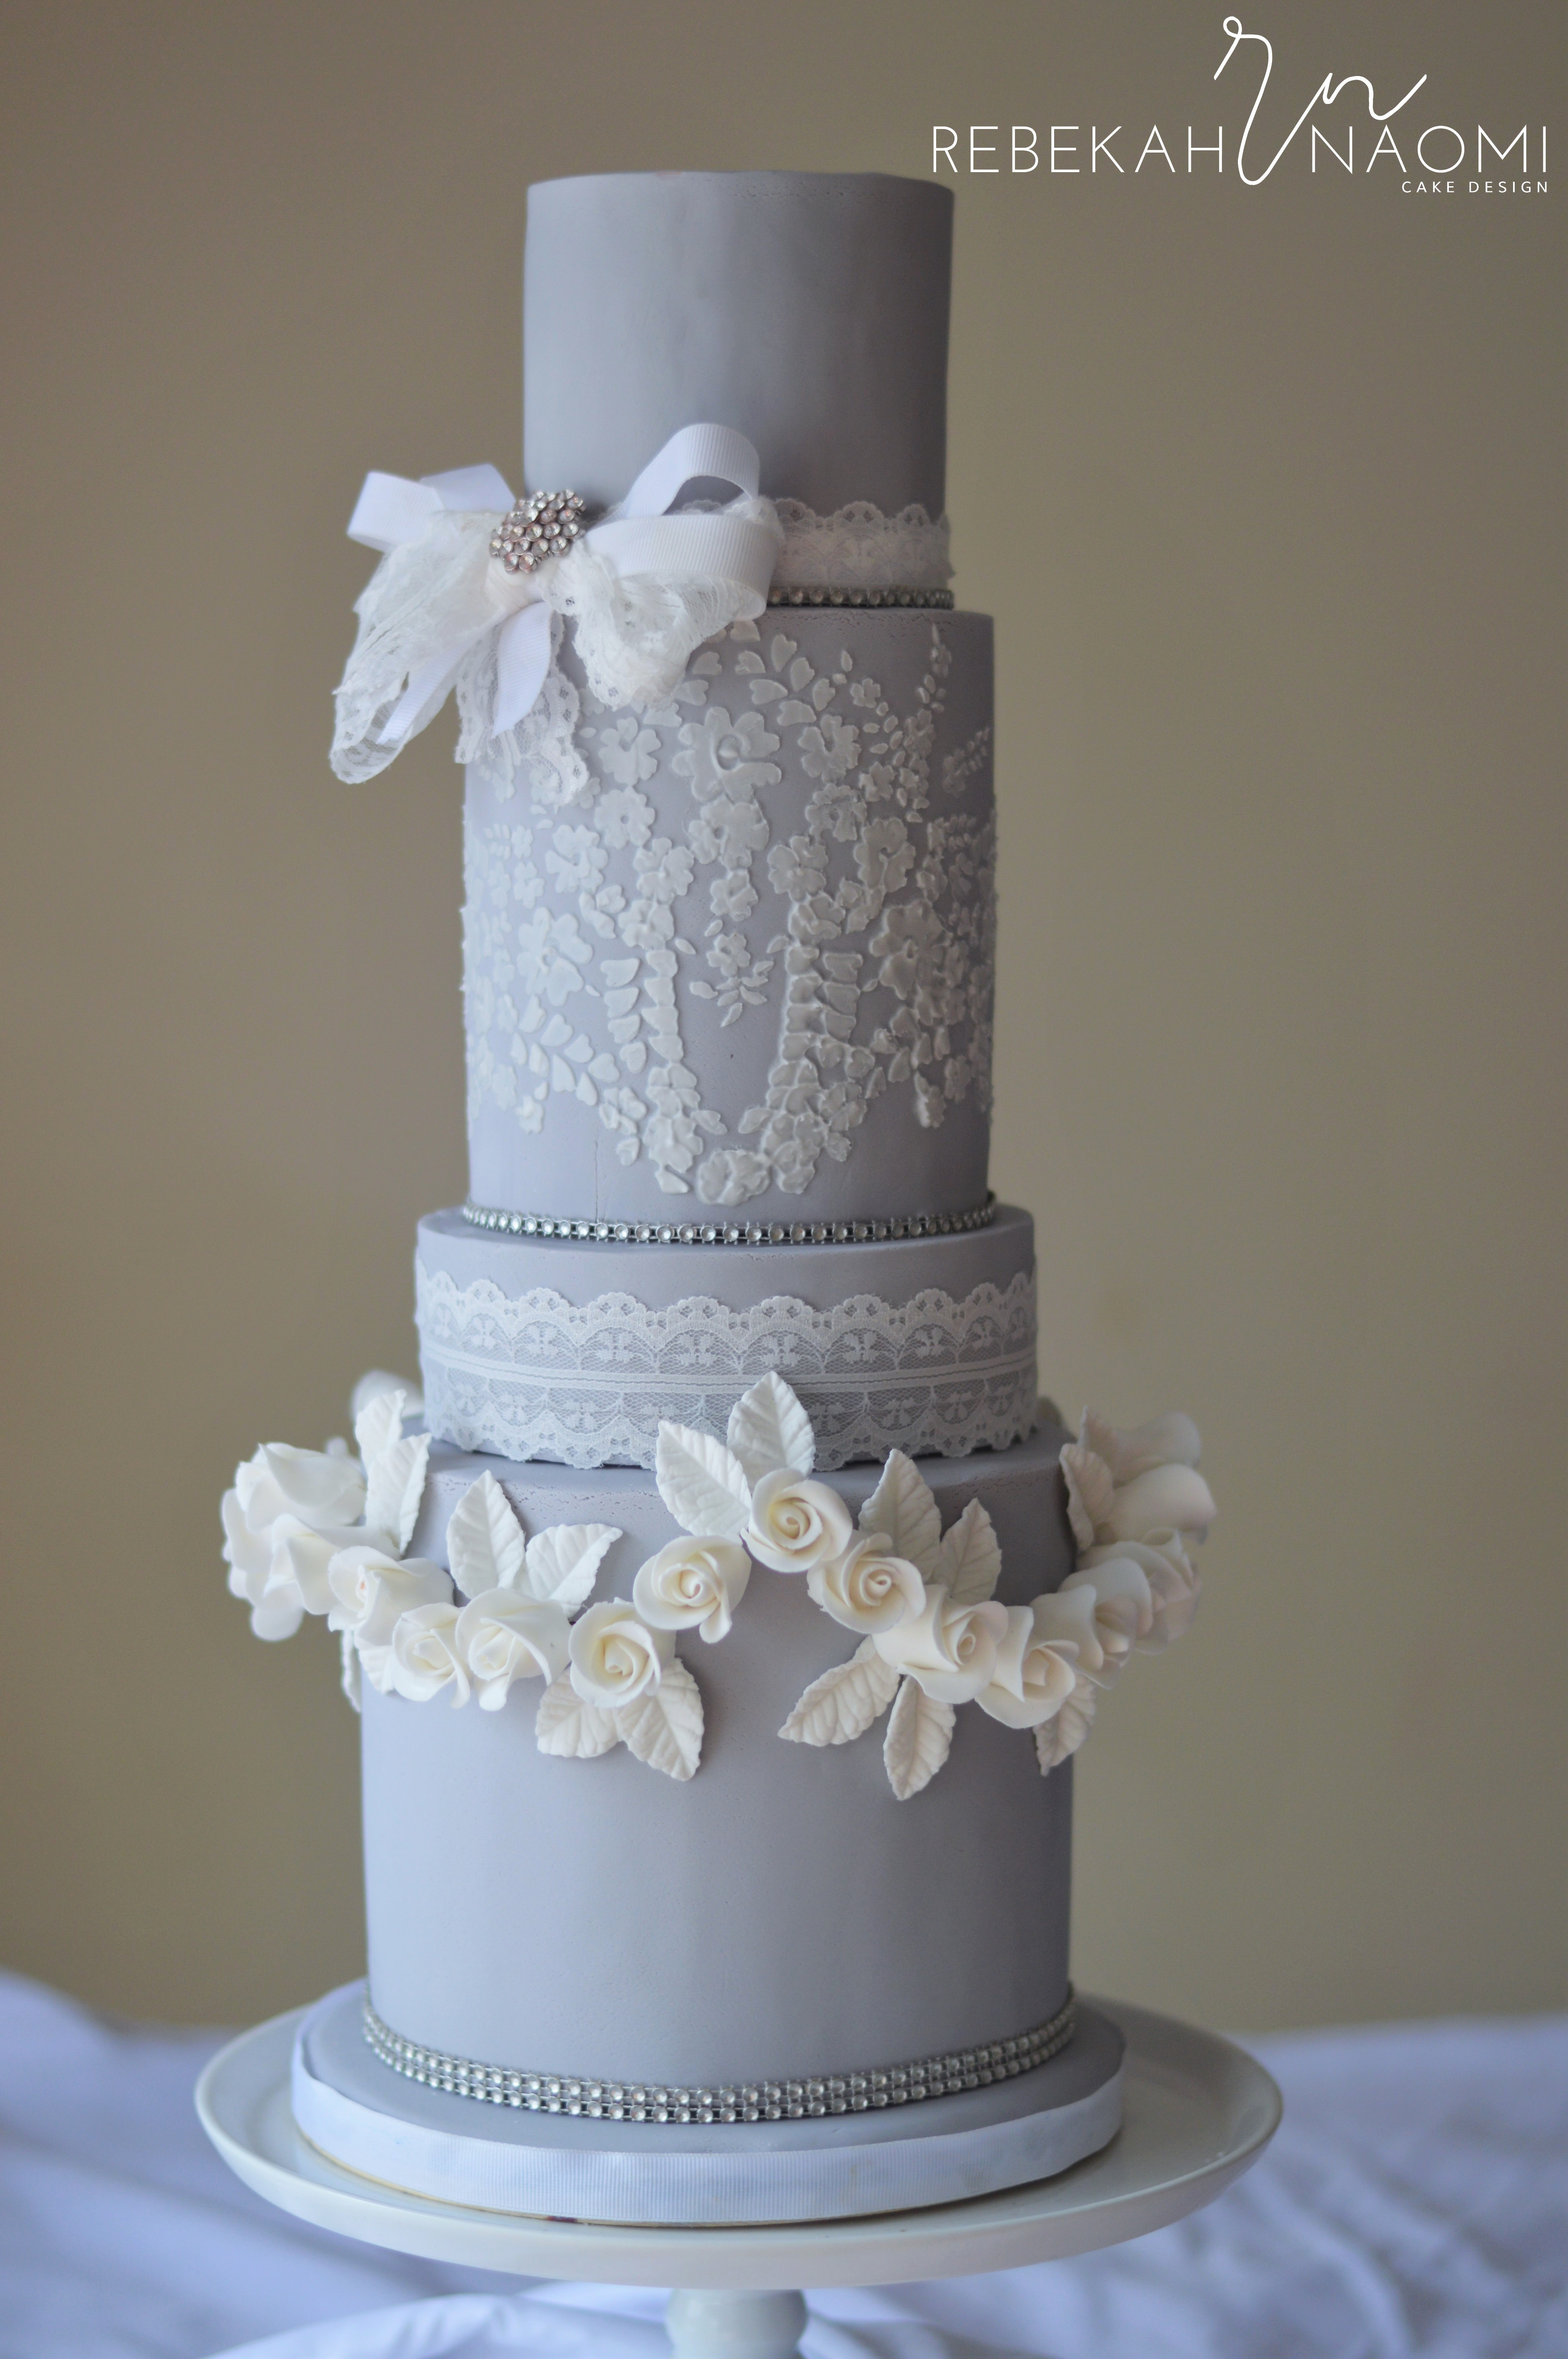 Dove Grey Wedgwood Cake A wedding cake with a wedgwood theme in dove grey and white- soft and romantic.